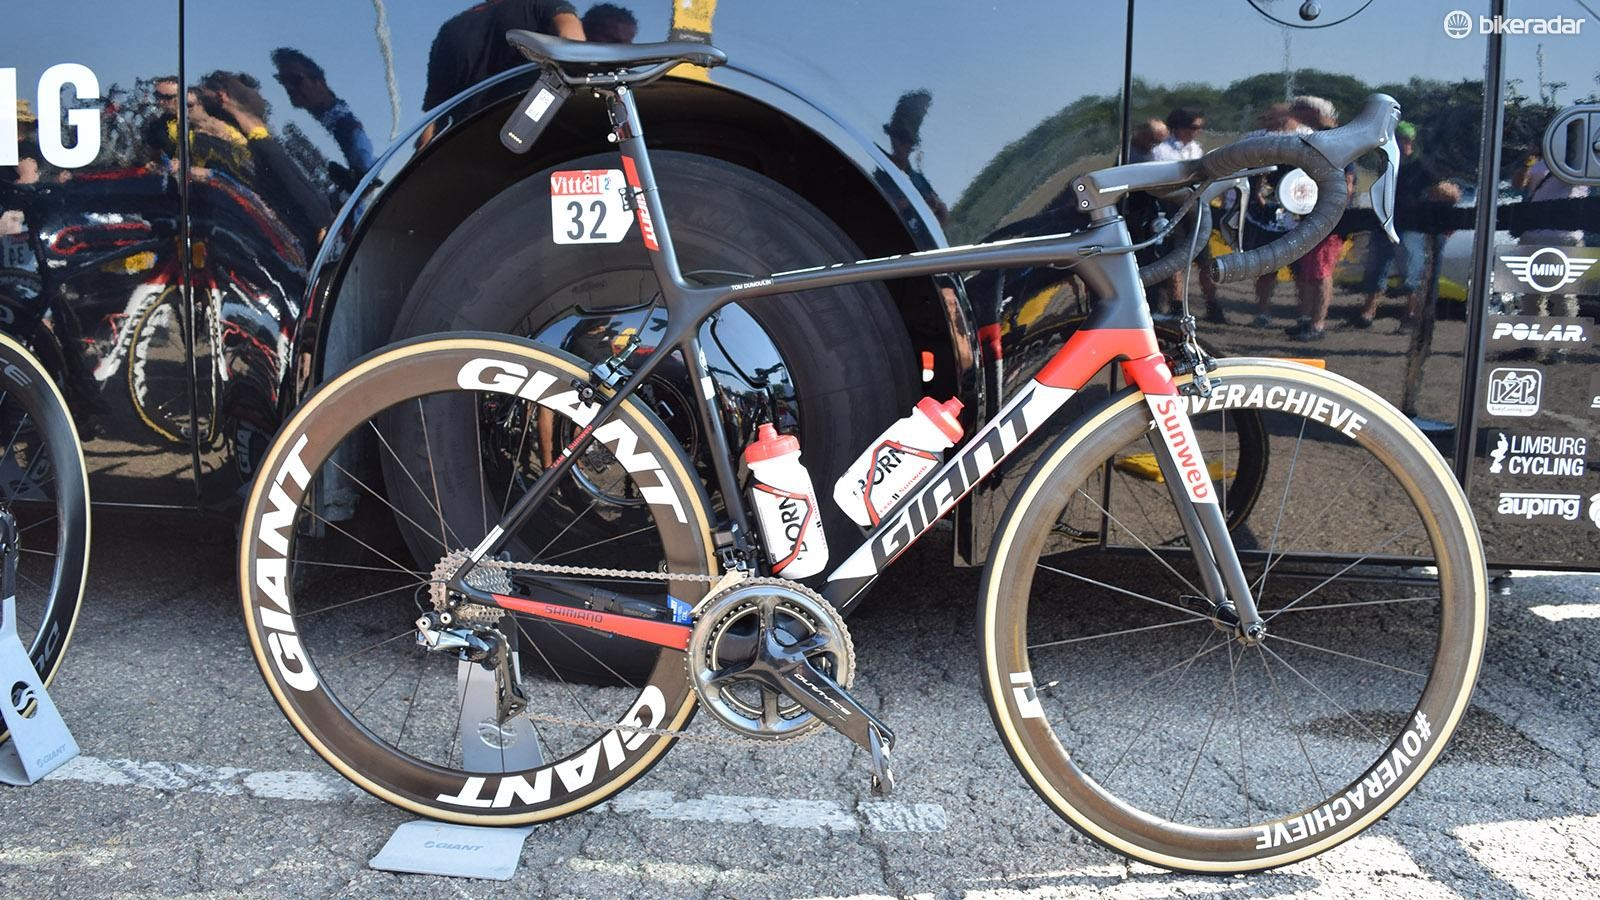 Tom Dumoulin's Giant TCR for the 2018 Tour de France